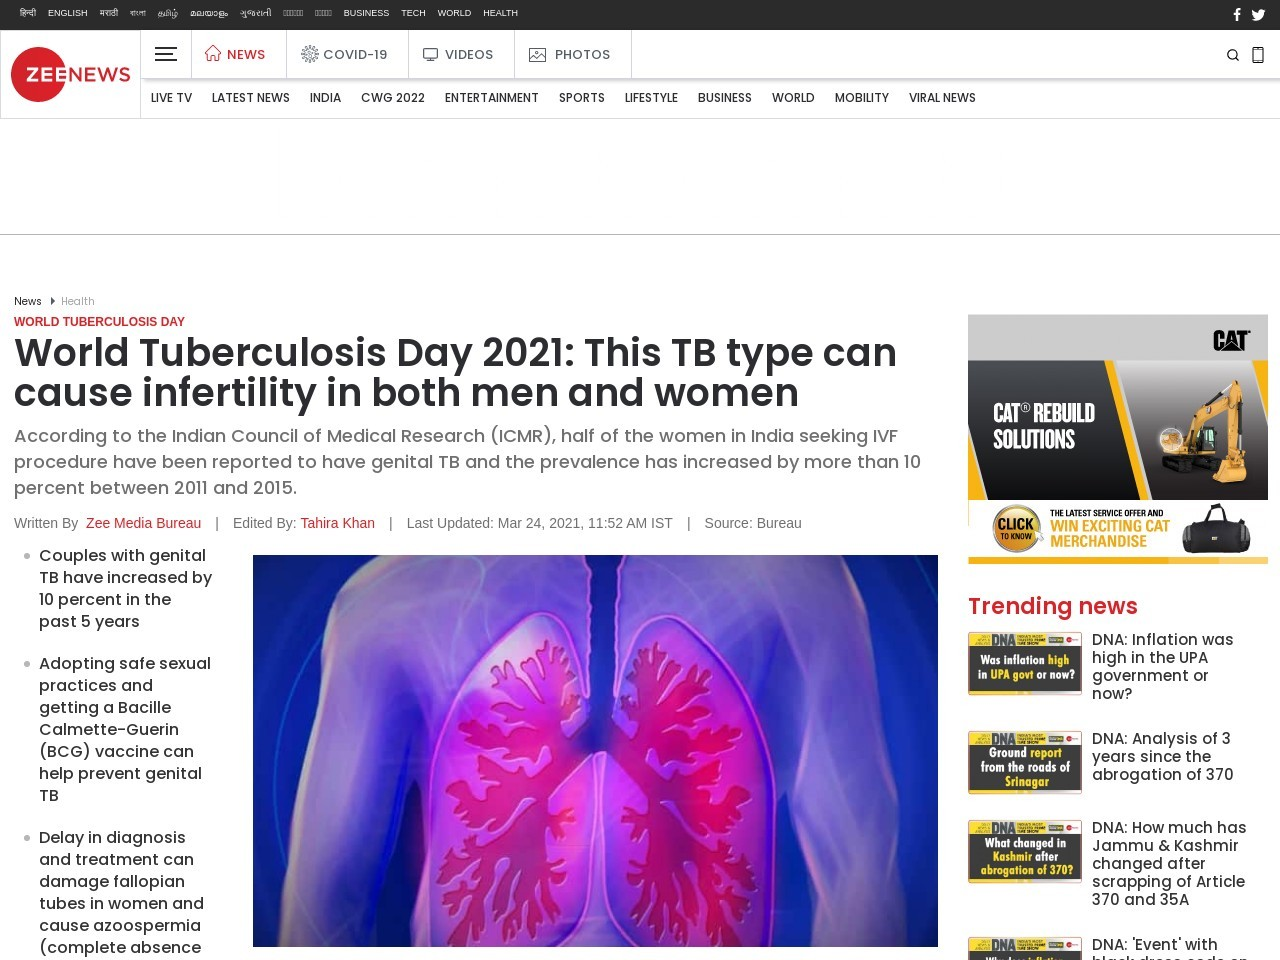 World Tuberculosis Day 2021: This TB type can cause infertility in both men and women